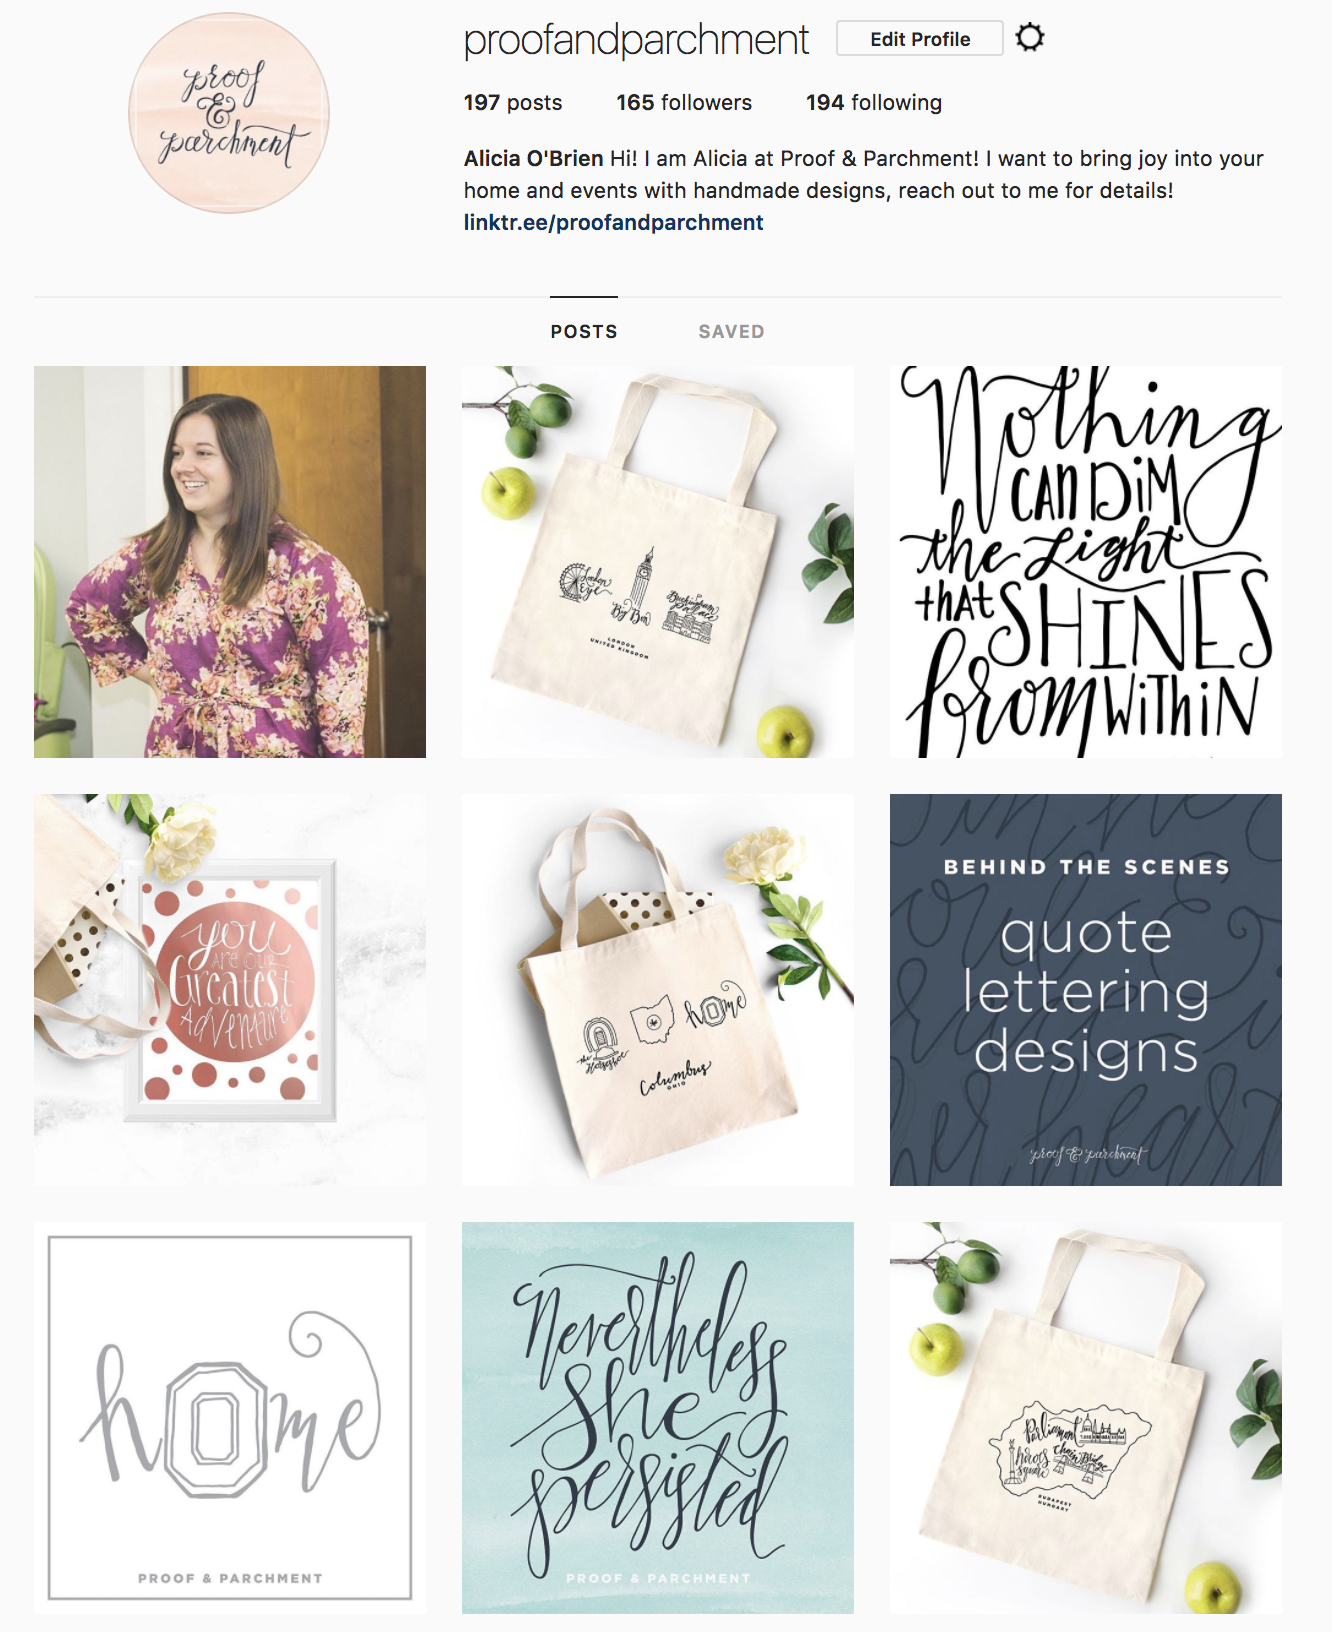 Proof & Parchment branding example with Instagram